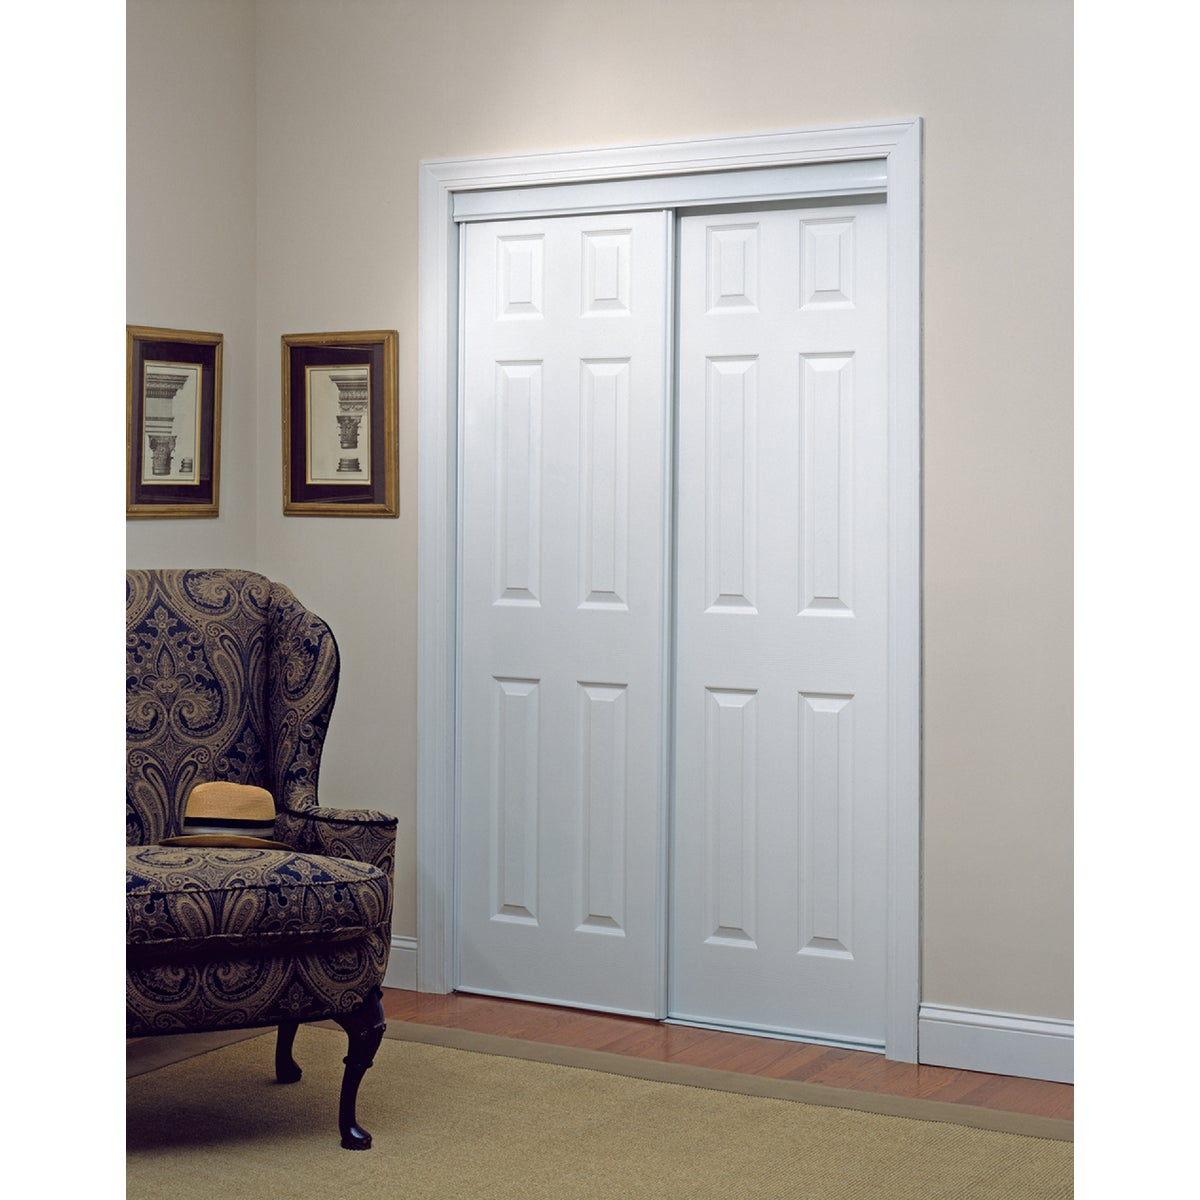 48X80 6-PNL BYPASS DOOR - 24-0010 by Home Decor Innov